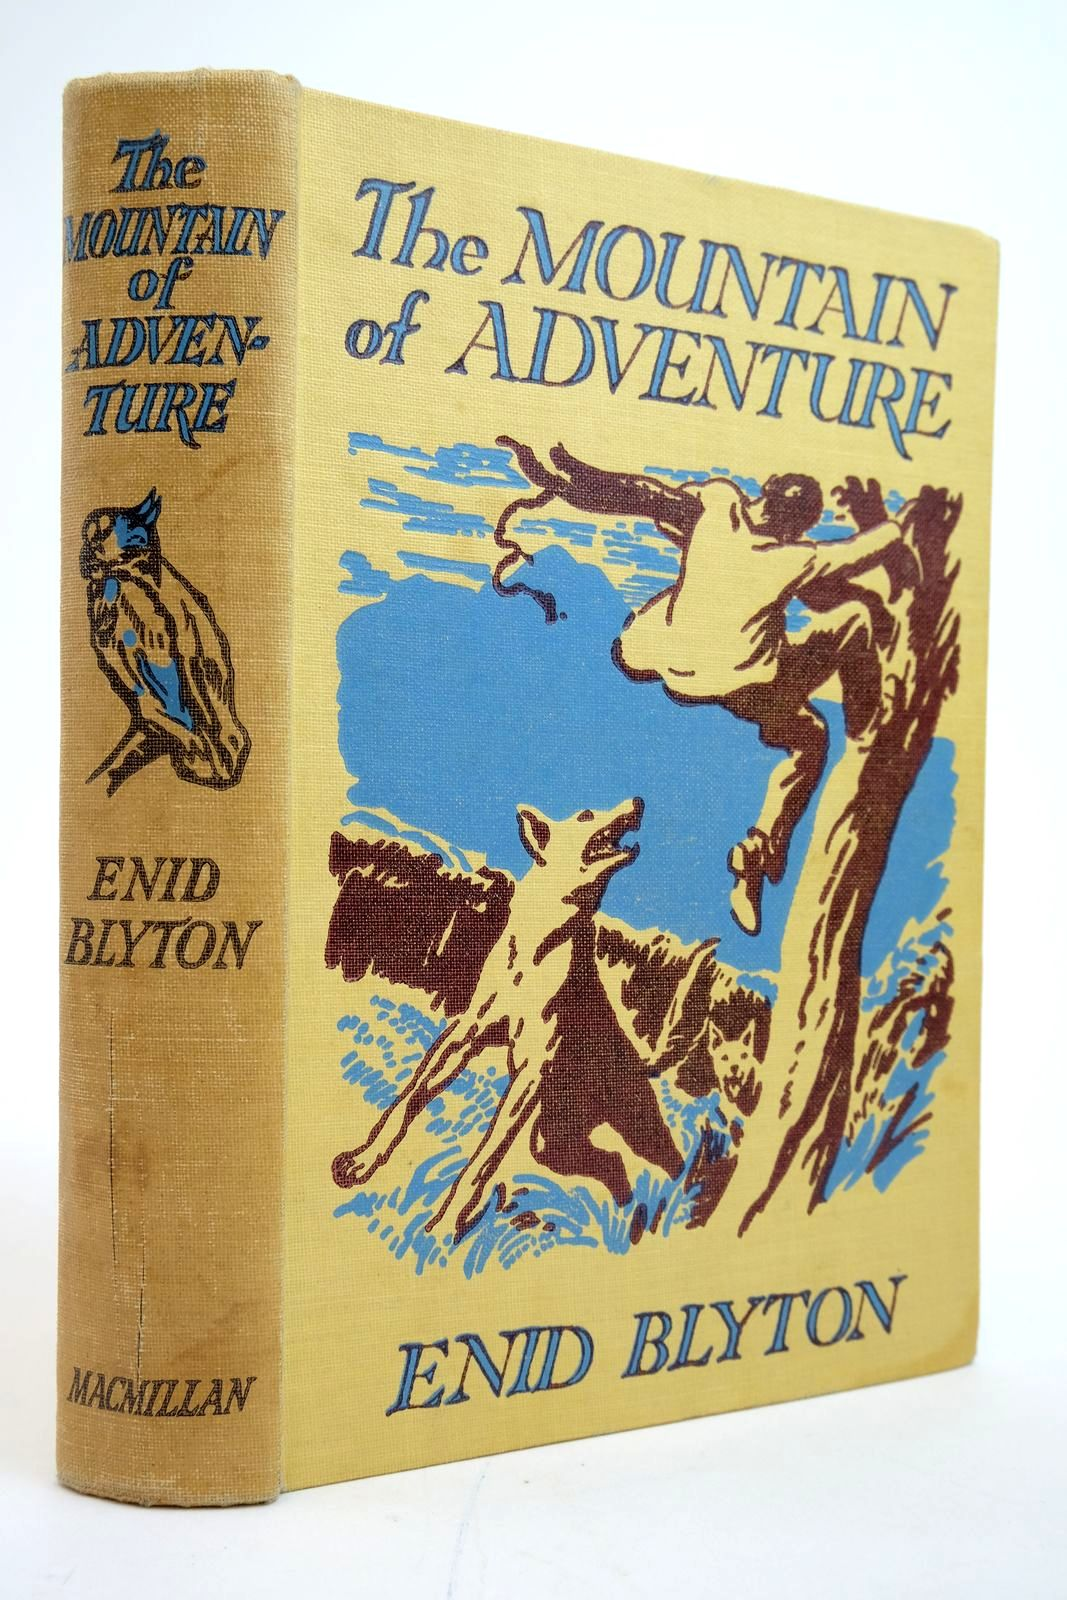 Photo of THE MOUNTAIN OF ADVENTURE written by Blyton, Enid illustrated by Tresilian, Stuart published by Macmillan & Co. Ltd. (STOCK CODE: 2135172)  for sale by Stella & Rose's Books